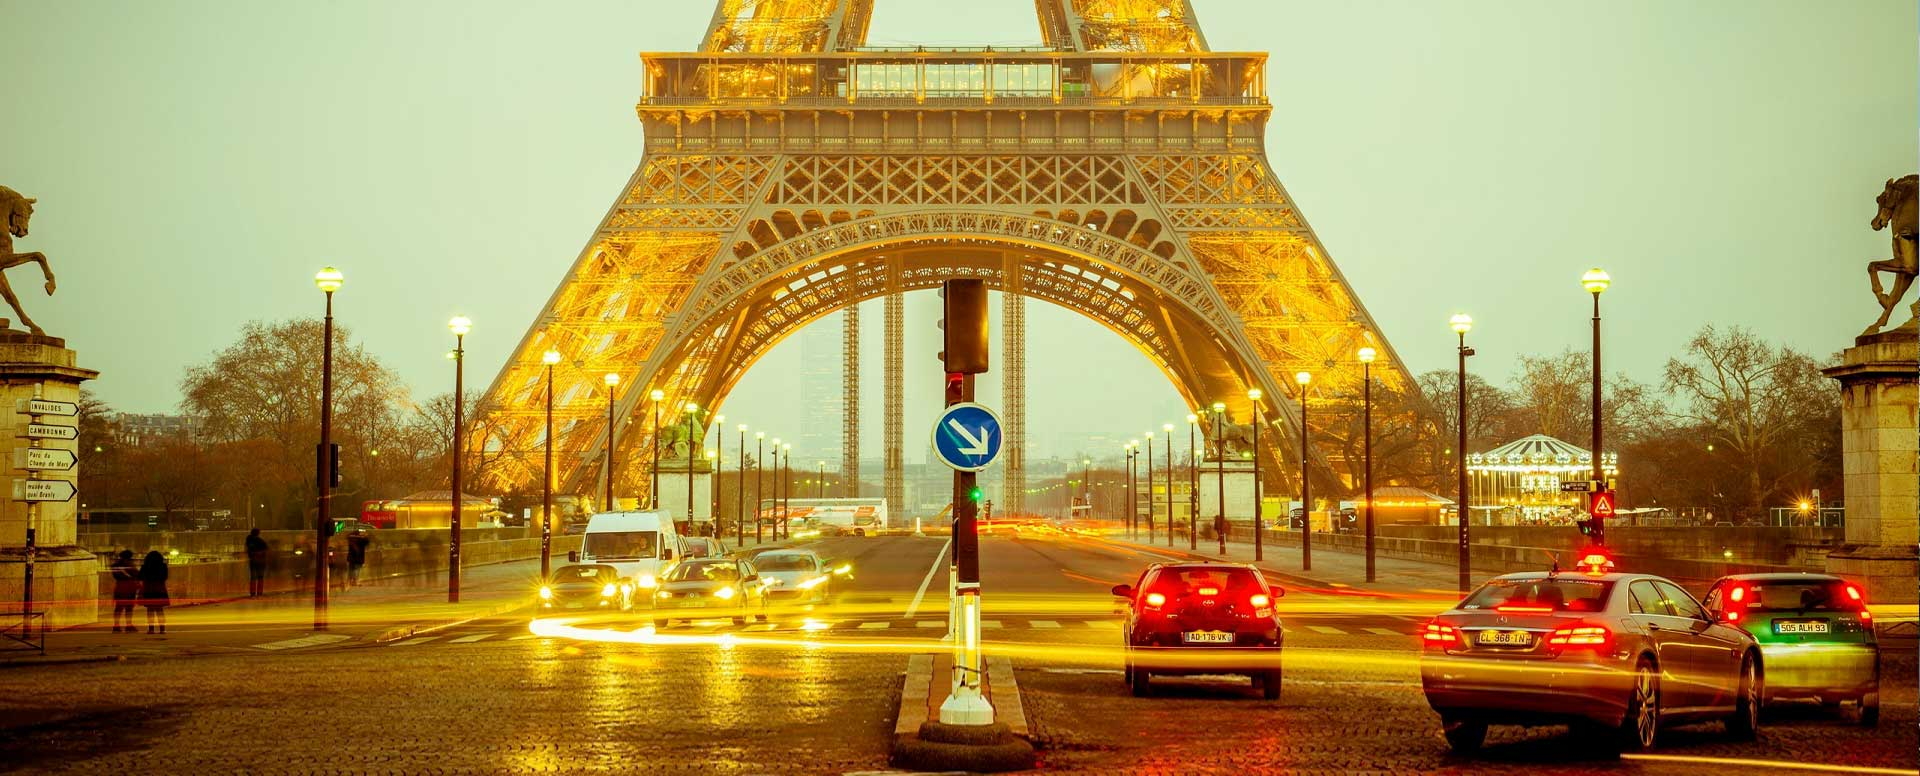 Discounted flight tickets from New York to Paris - IFlyFirstClass